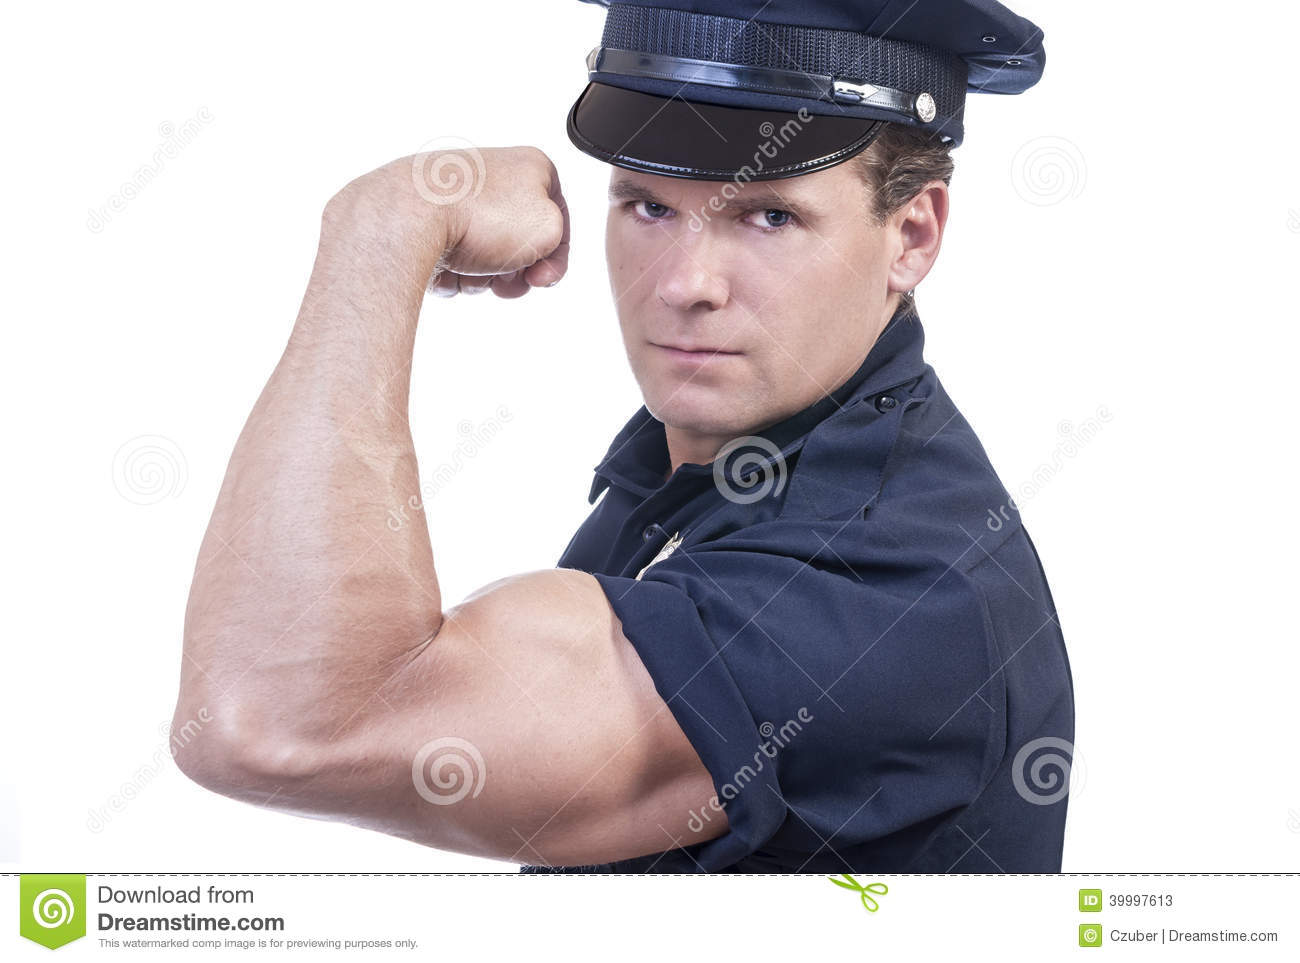 Strong Arm Of The Law Stock Photo - Image: 39997613